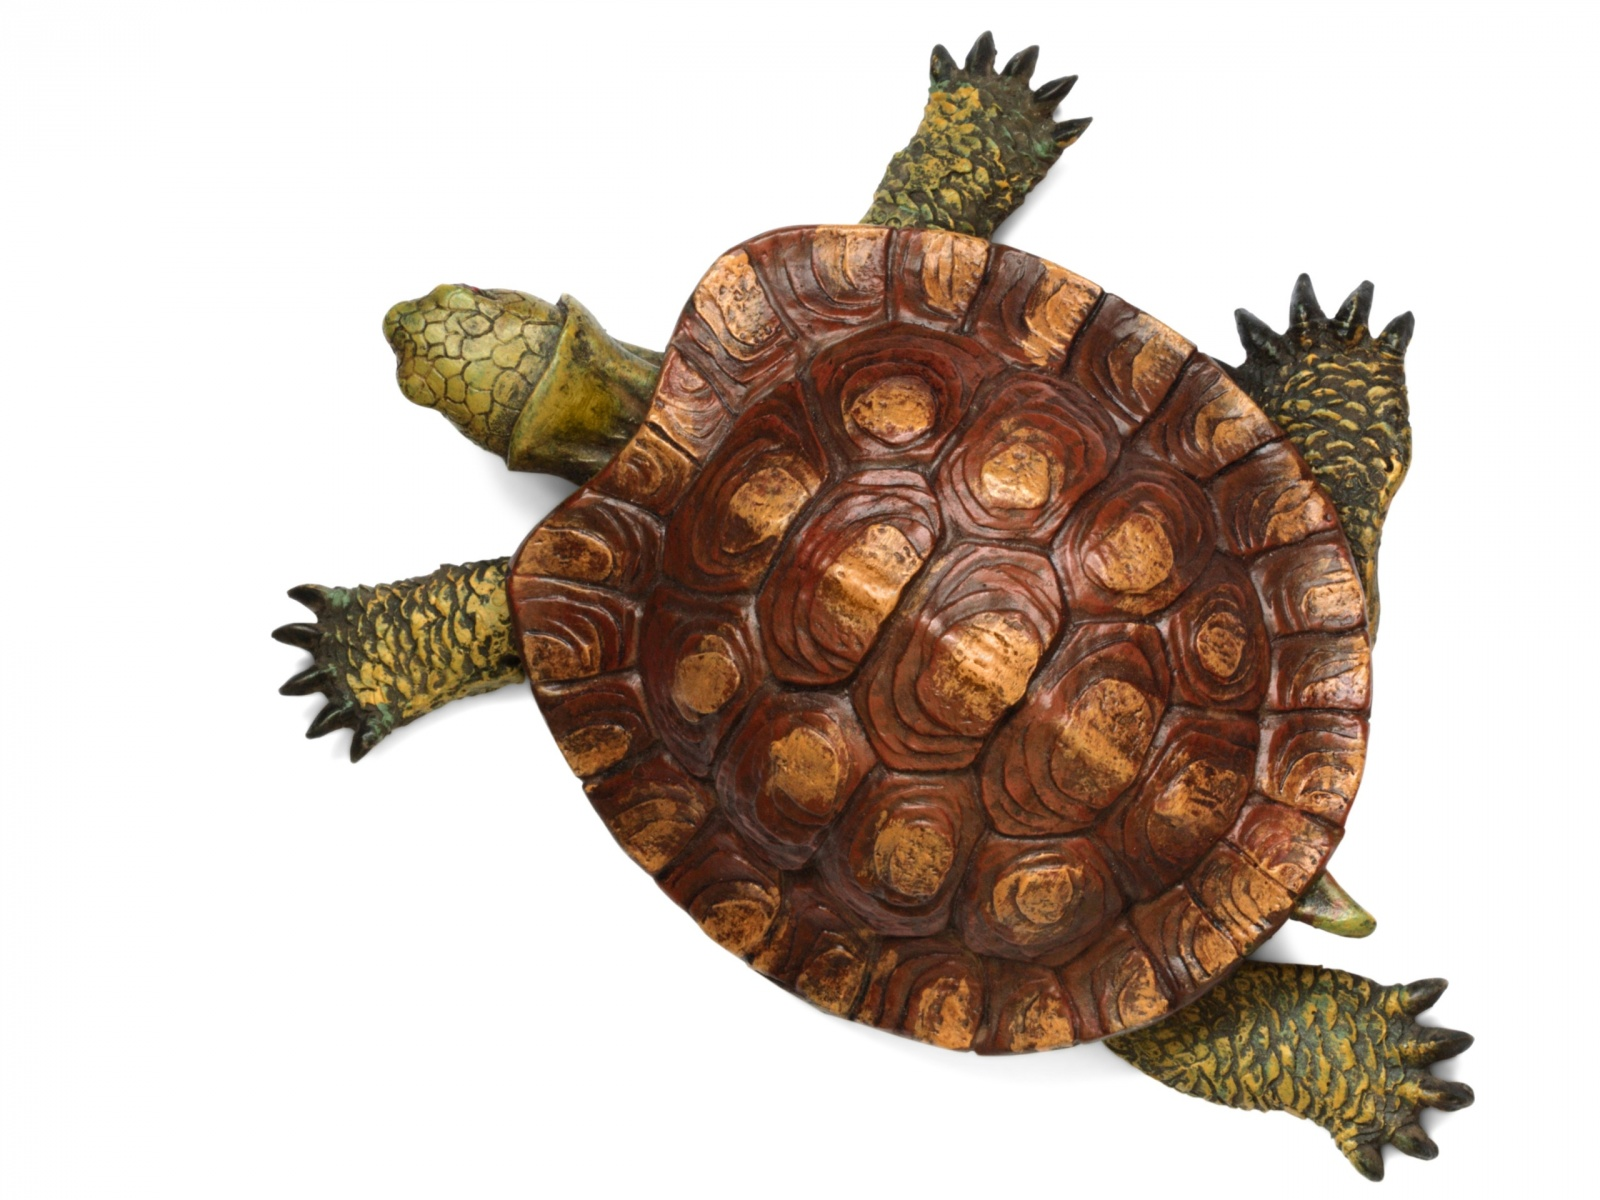 1500x500 Turtle top view